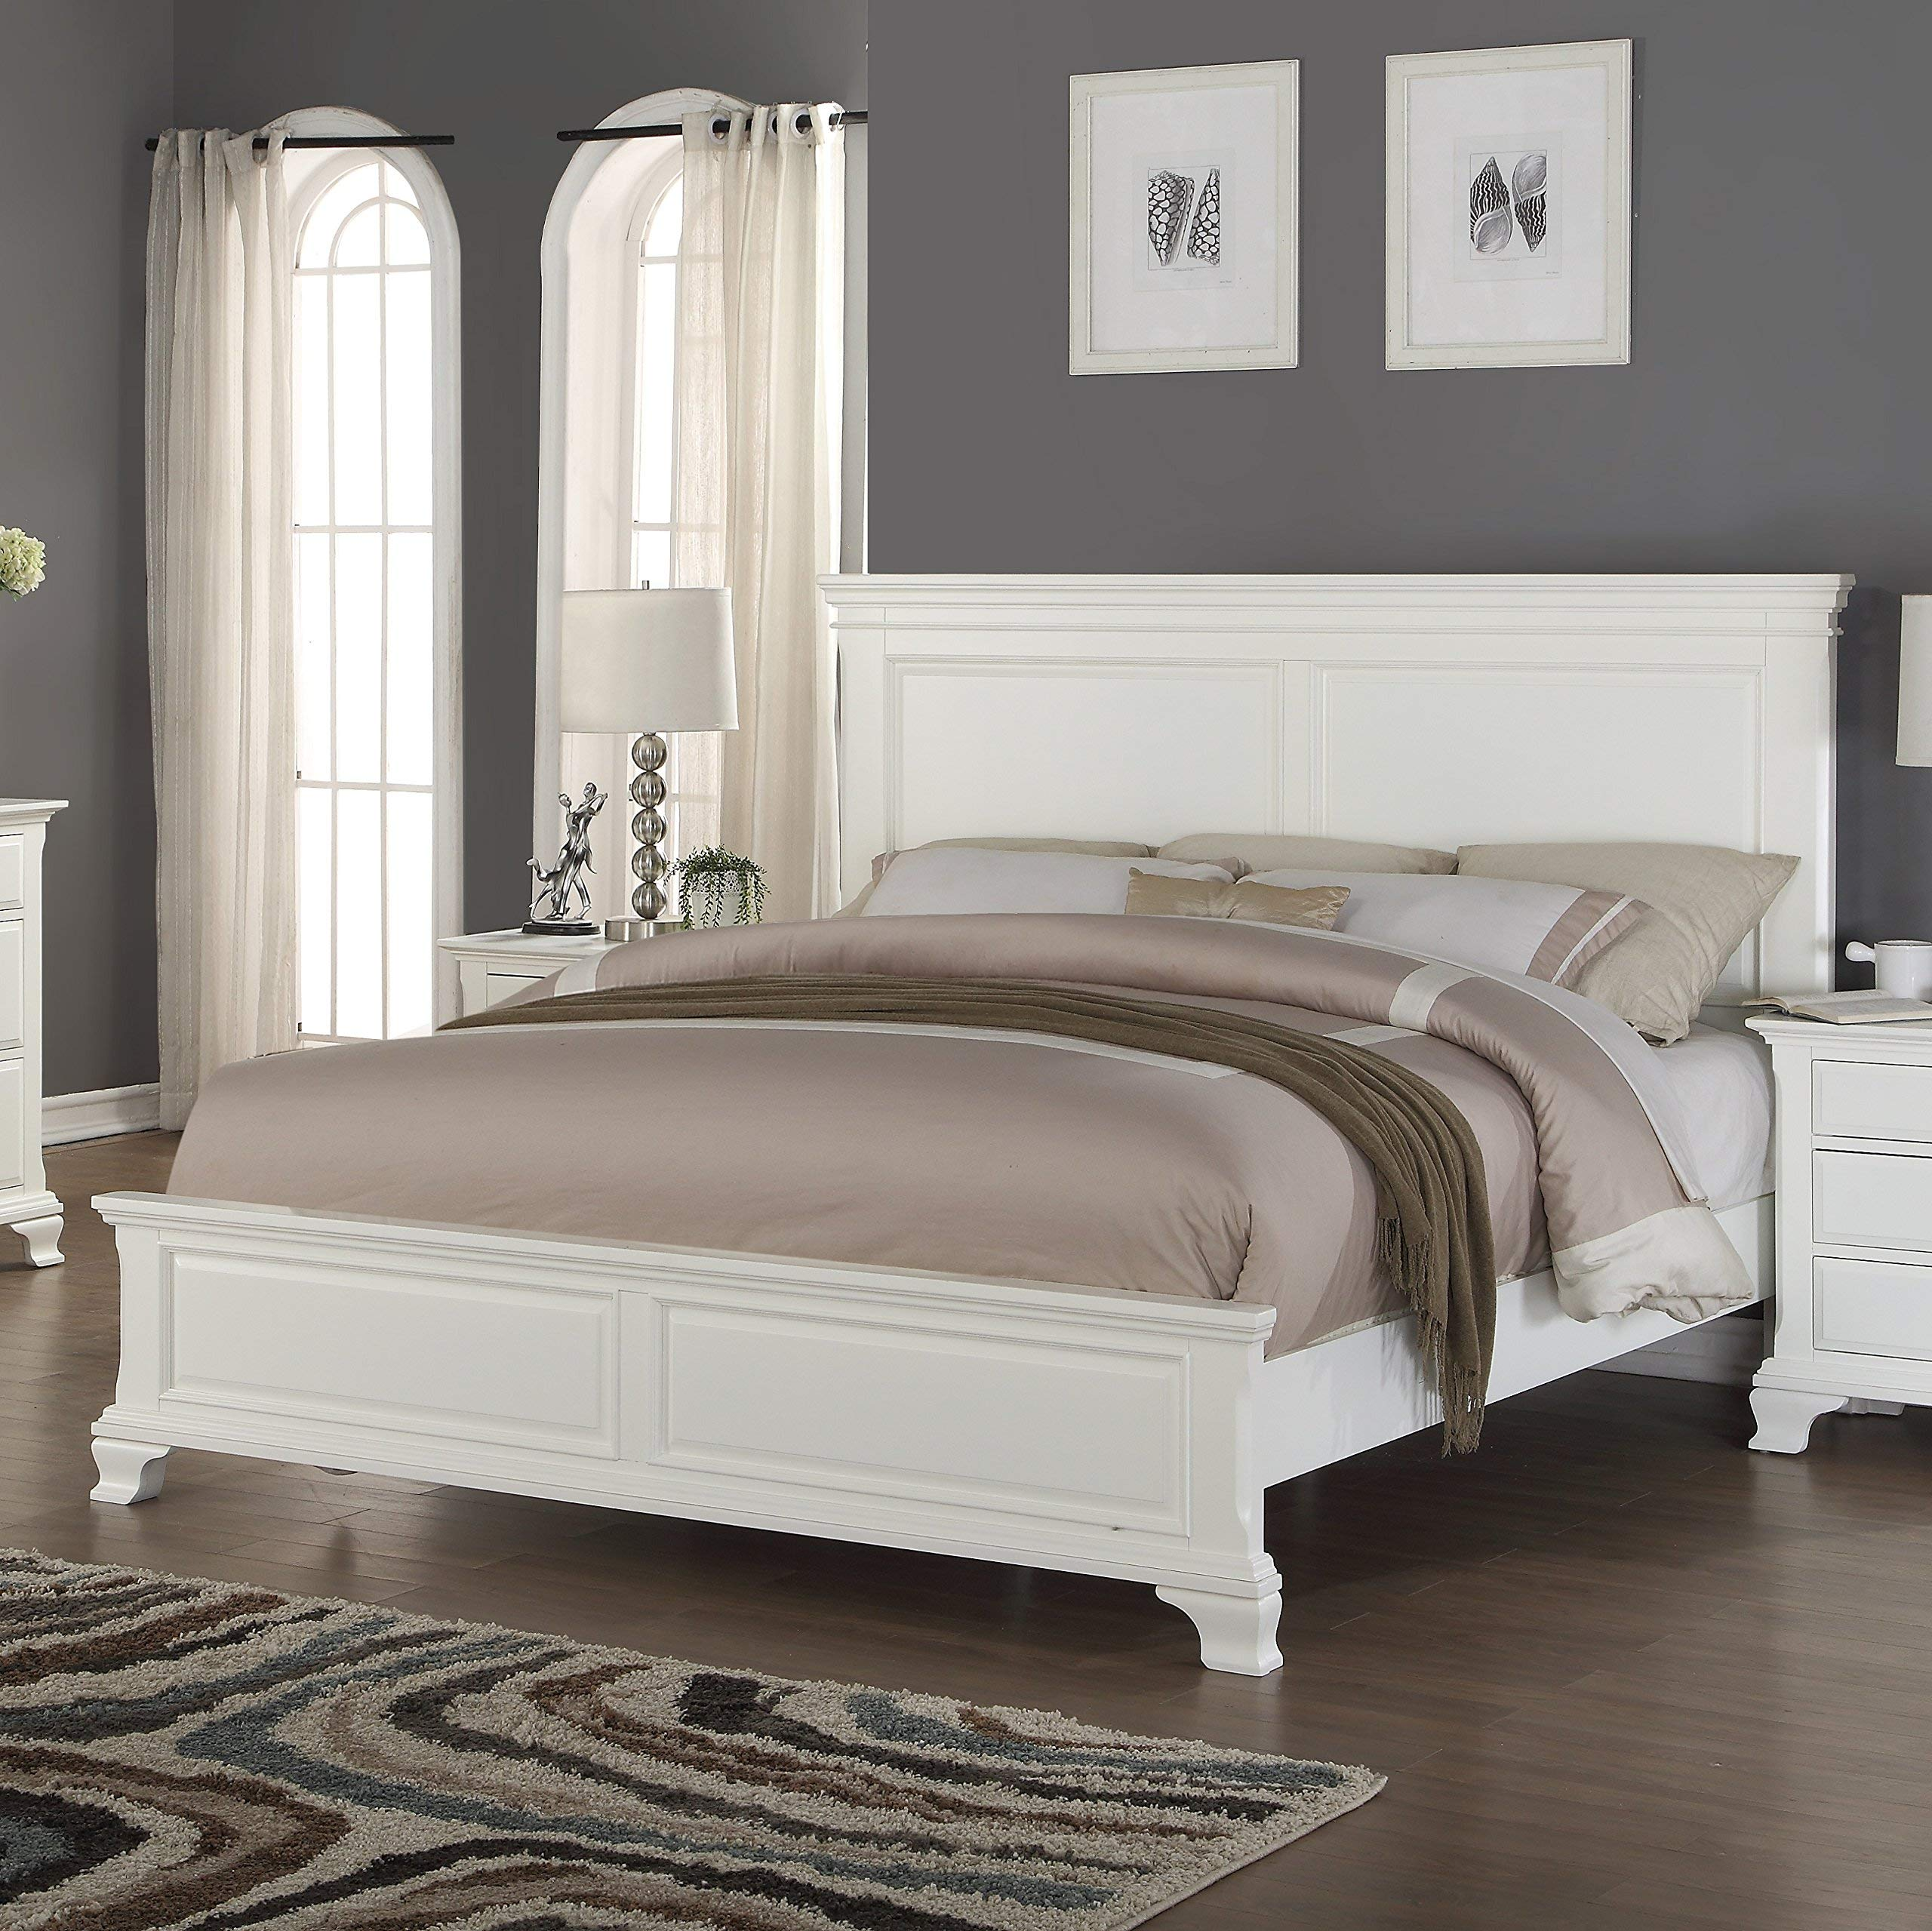 Roundhill Furniture Laveno 012 White Wood Bed, King by Roundhill Furniture